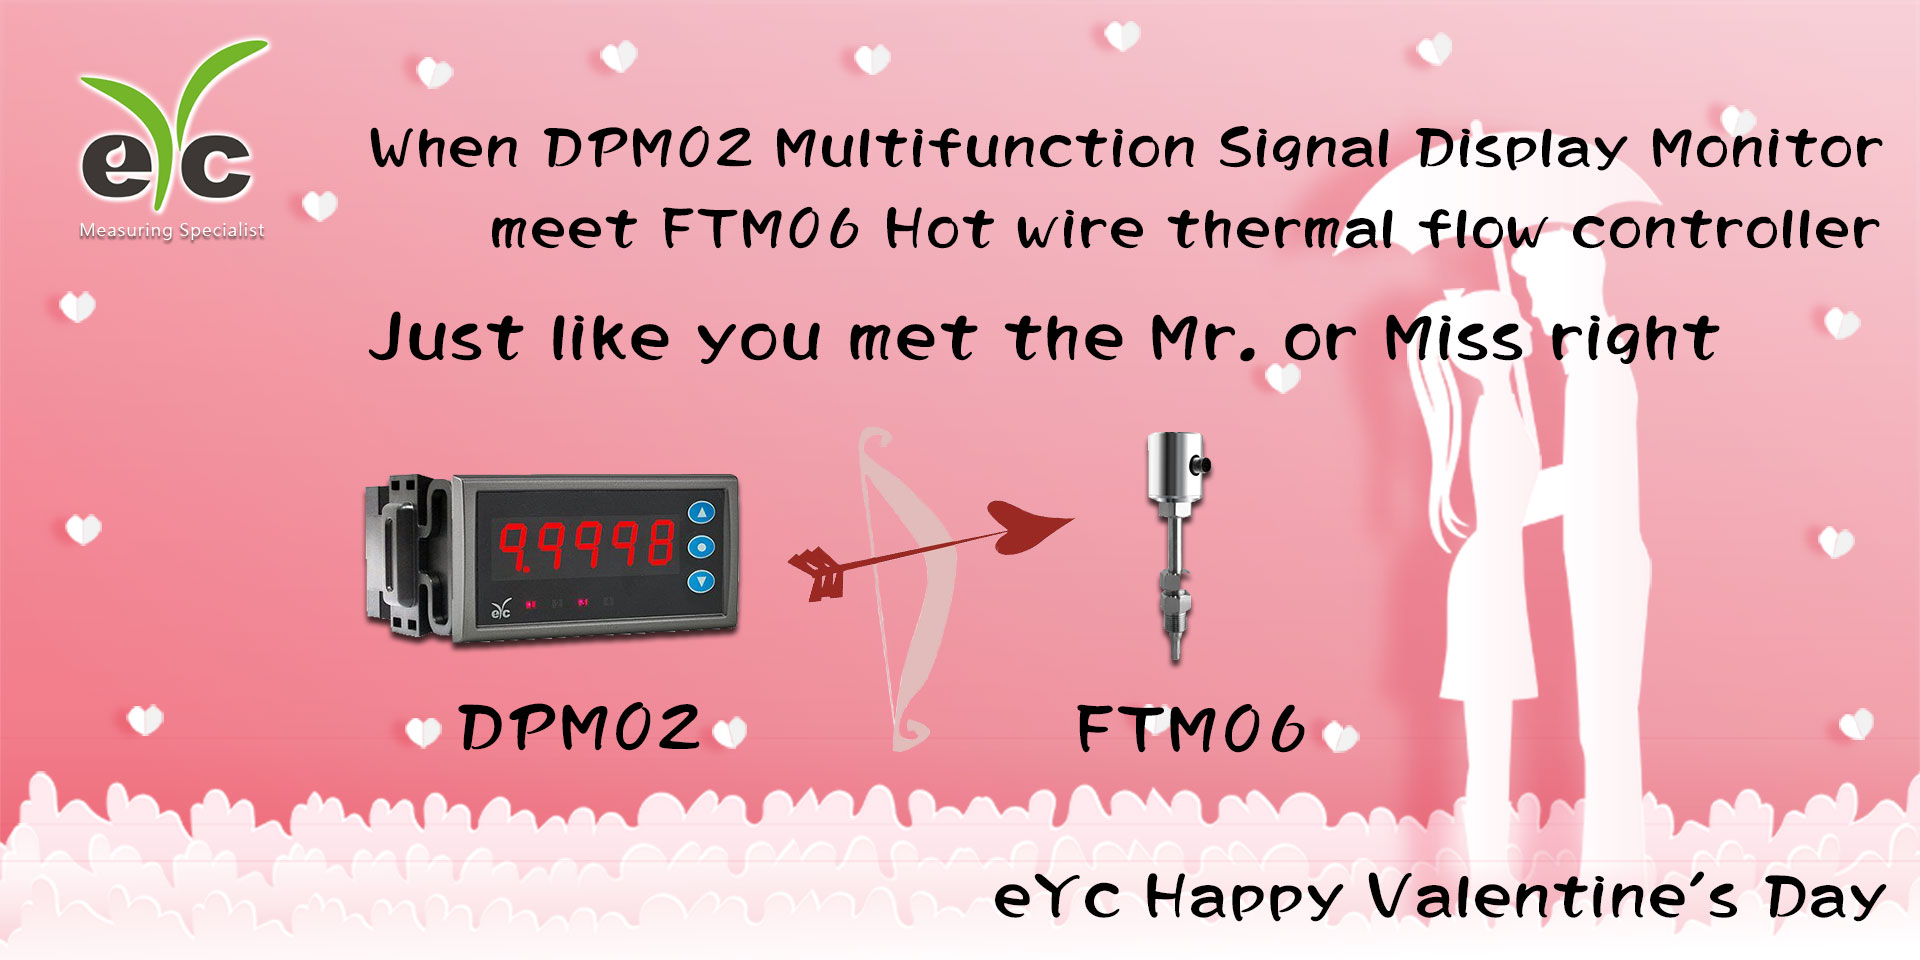 eYc Happy Valentine's Day